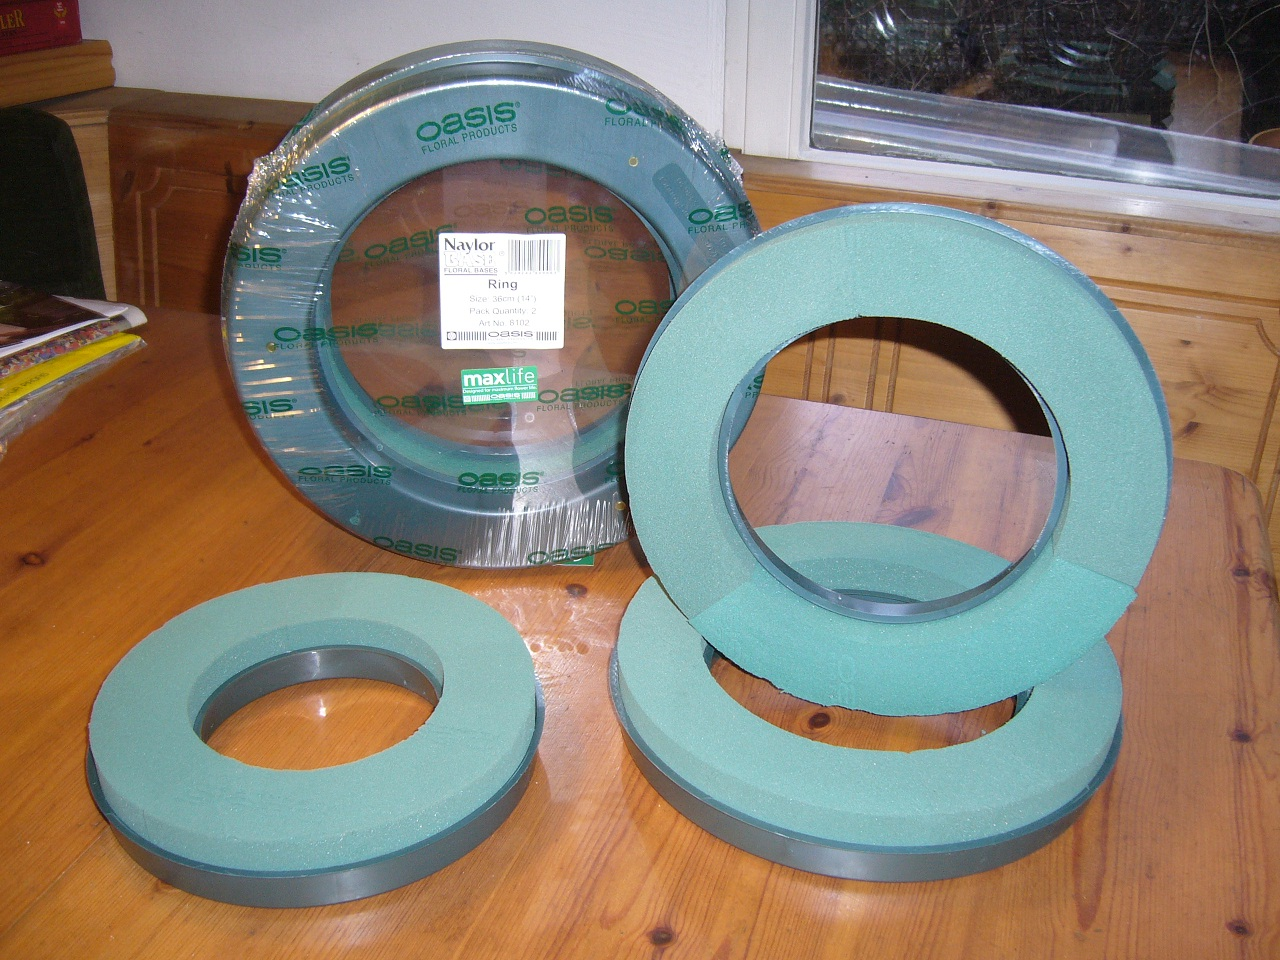 ring 30 cm oasis professional put foam plug moss joss wreath ebay. Black Bedroom Furniture Sets. Home Design Ideas